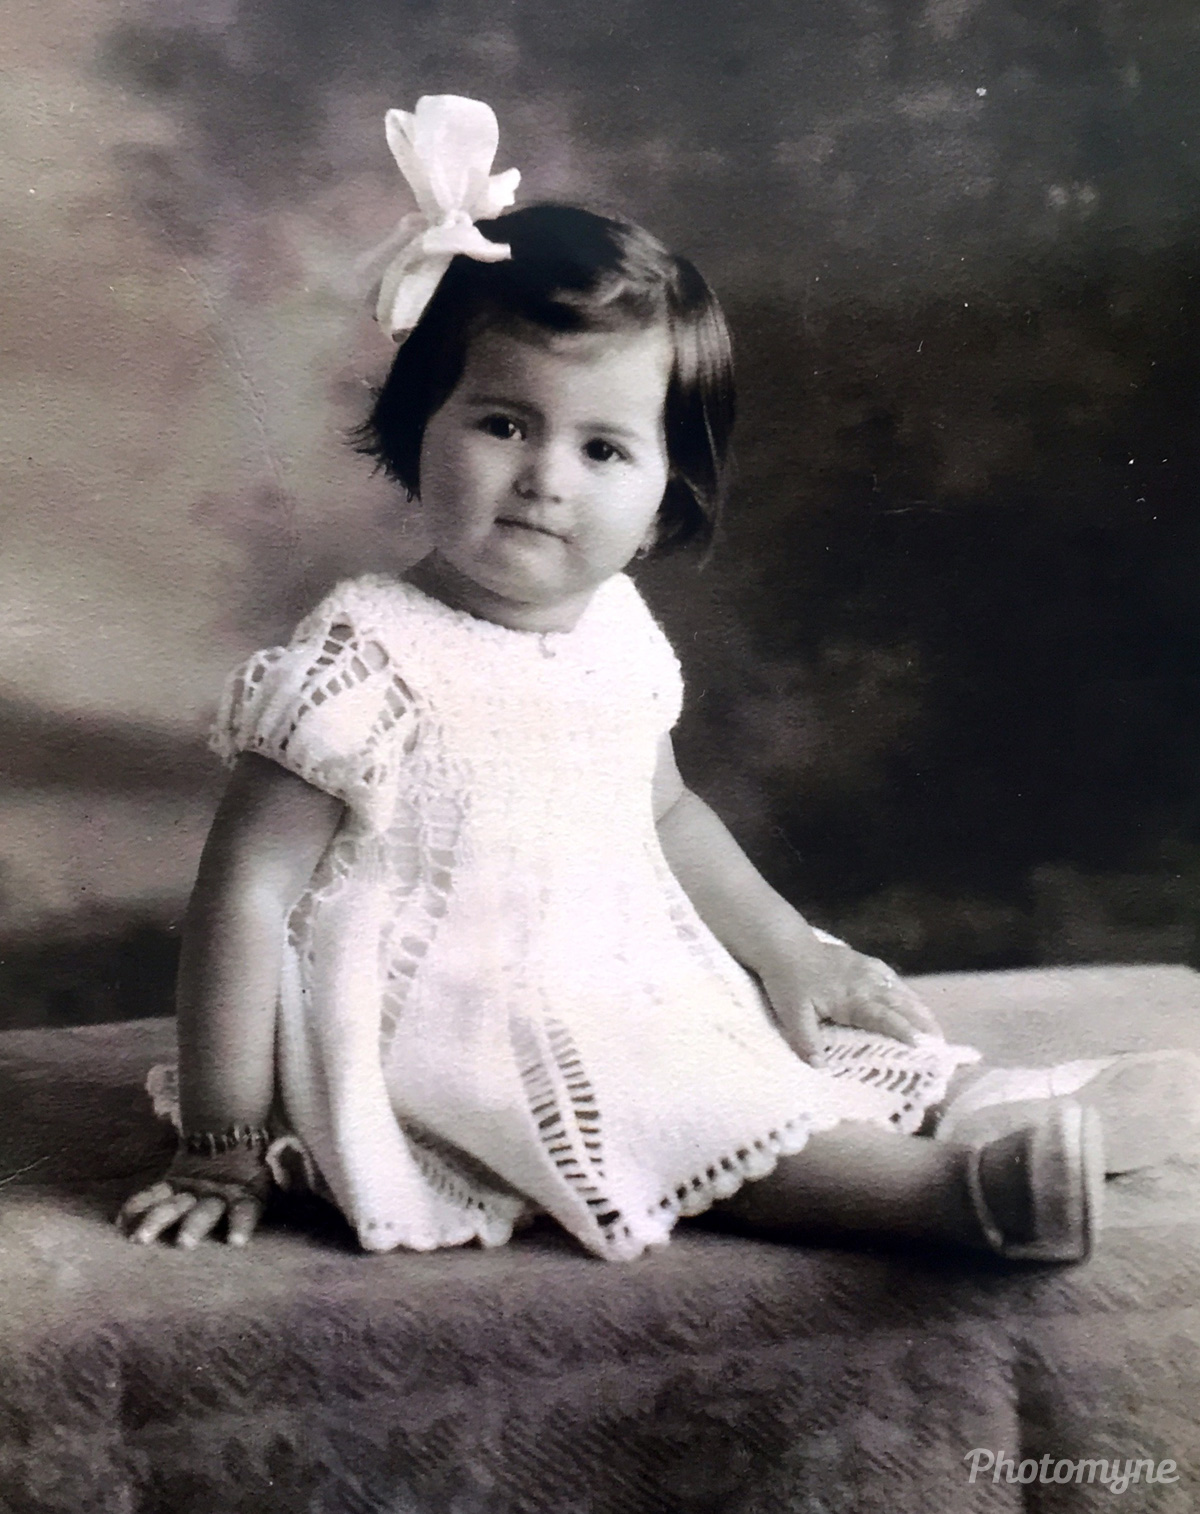 Mi suegra en su más tierna infancia , hoy tiene 85 años! (My mother-in-law in her early childhood, today she is 85 years old!) Cucutá Norte de Santander, Maicao, Colombia, 1933